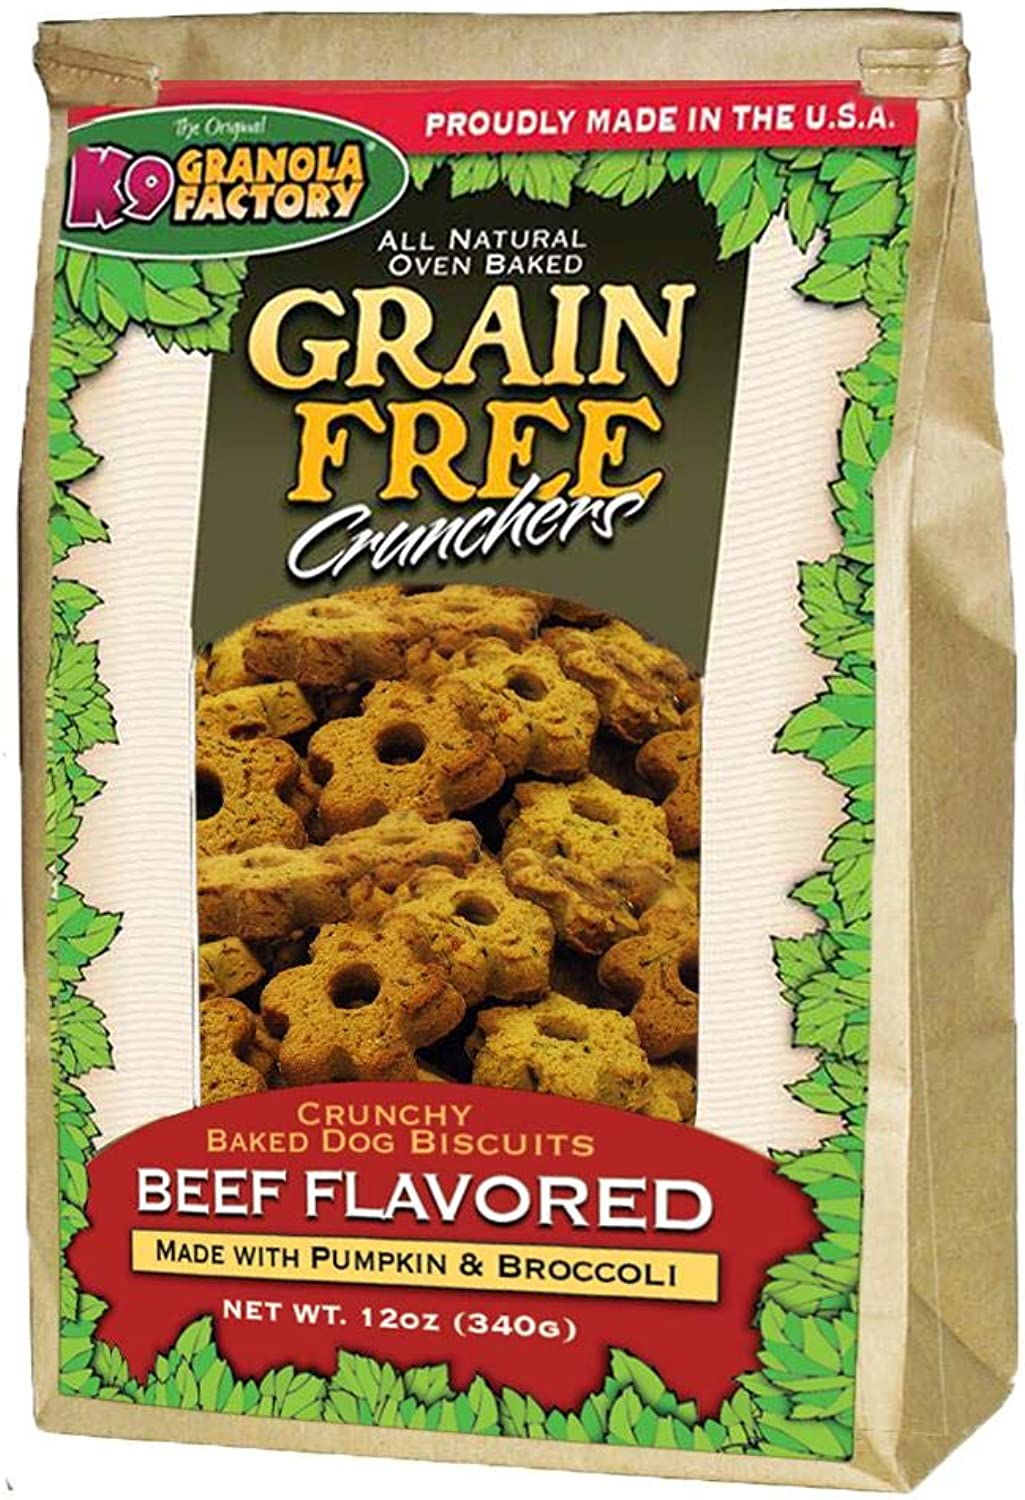 K9 Granola Factory Grain Free Beef with Pumpkin and Broccoli Crunchers (12 oz)